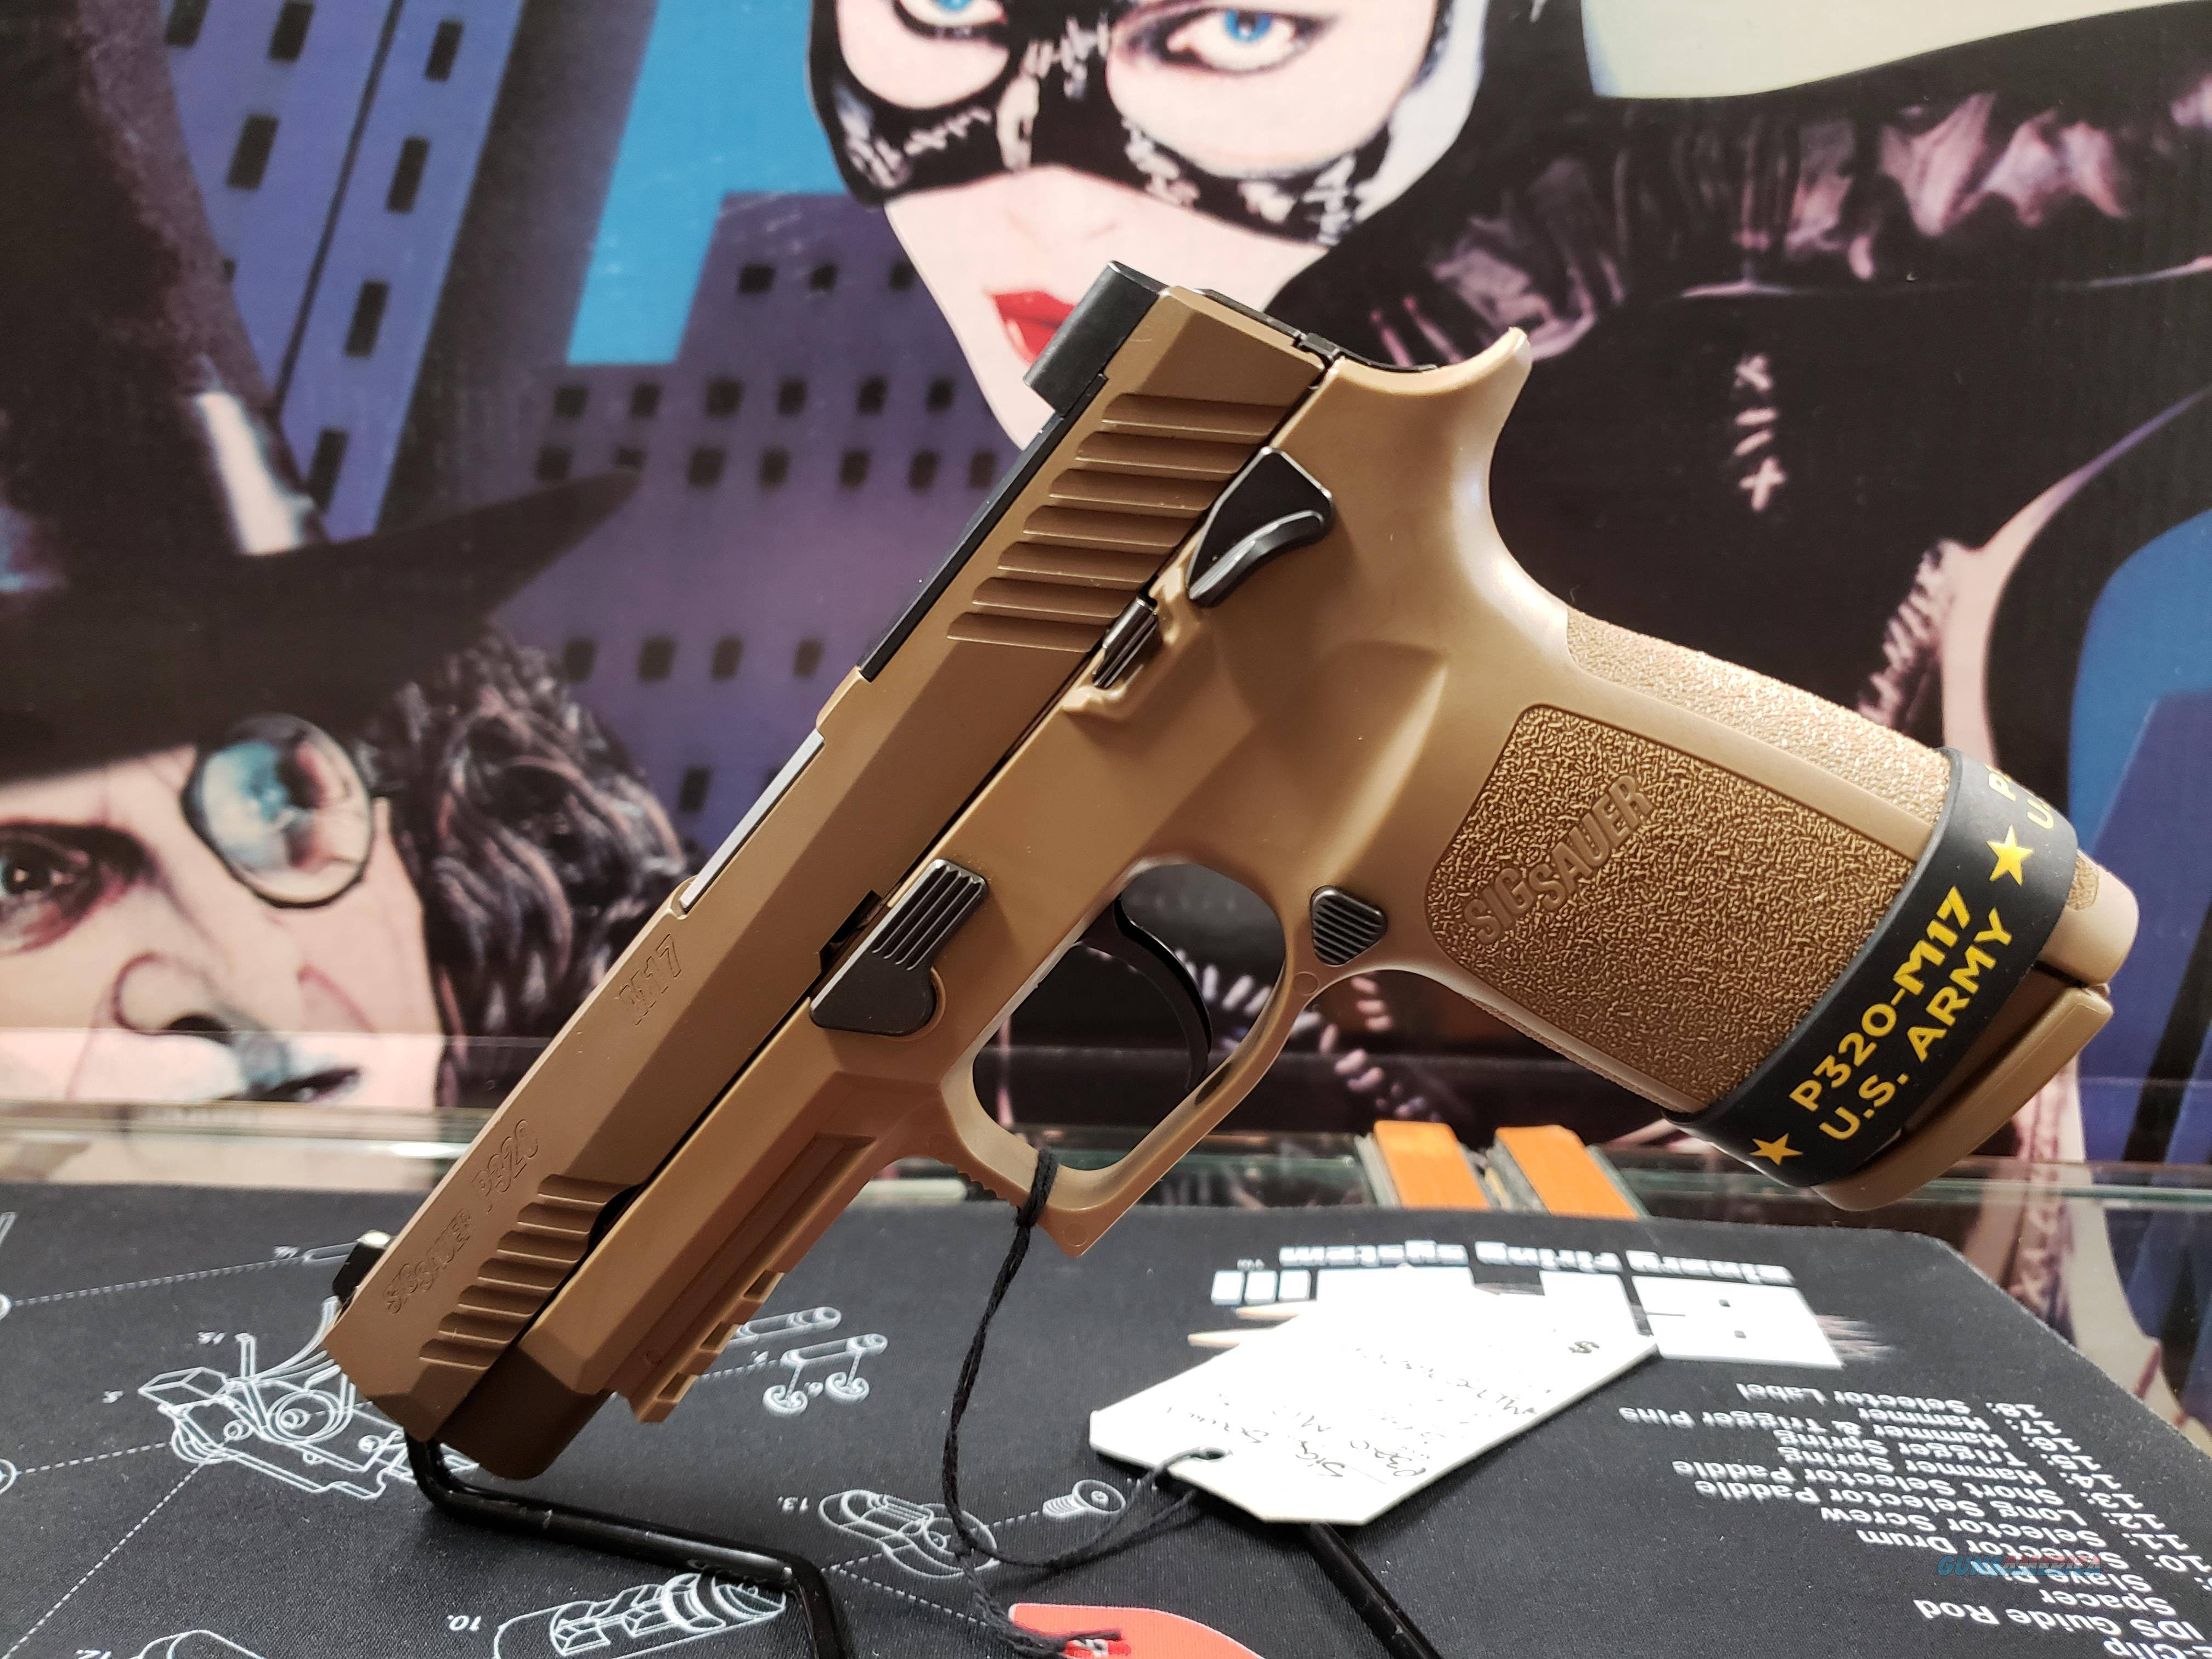 """Sig Sauer 320F9M17MS P320 M17 9mm Luger Double 4.7"""" 17+1 Coyote Polymer Grip Coyote Stainless Steel PVD Slide  Guns > Pistols > Sig - Sauer/Sigarms Pistols > P320"""